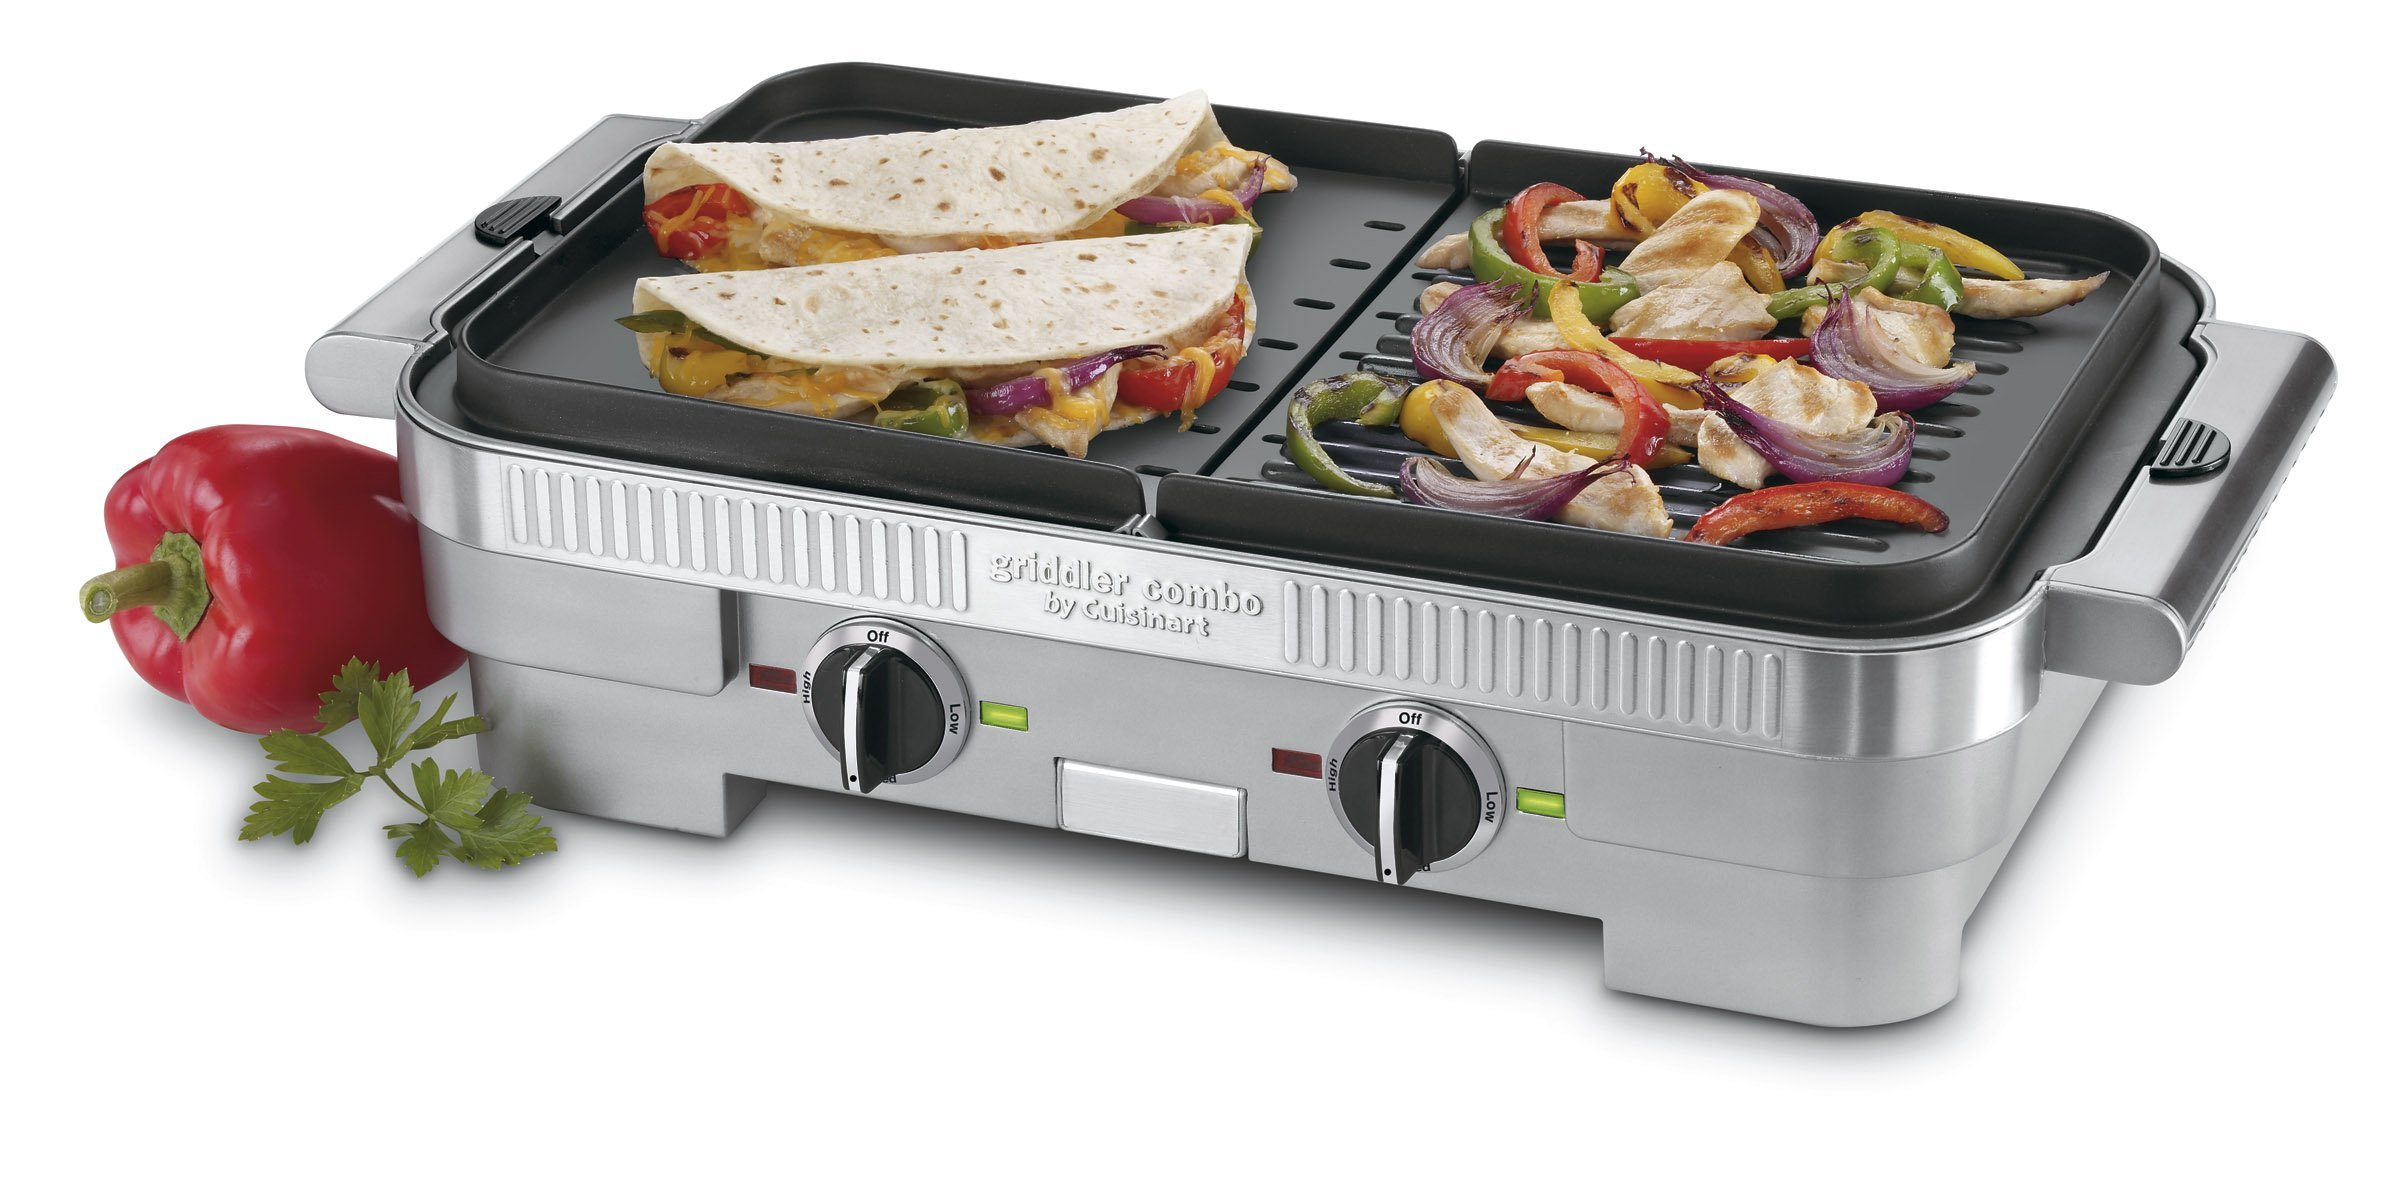 Cuisinart GR-55 Griddler Stainless Steel Nonstick Grill/Griddle Combo (Certified Refurbished) by Cuisinart (Image #2)